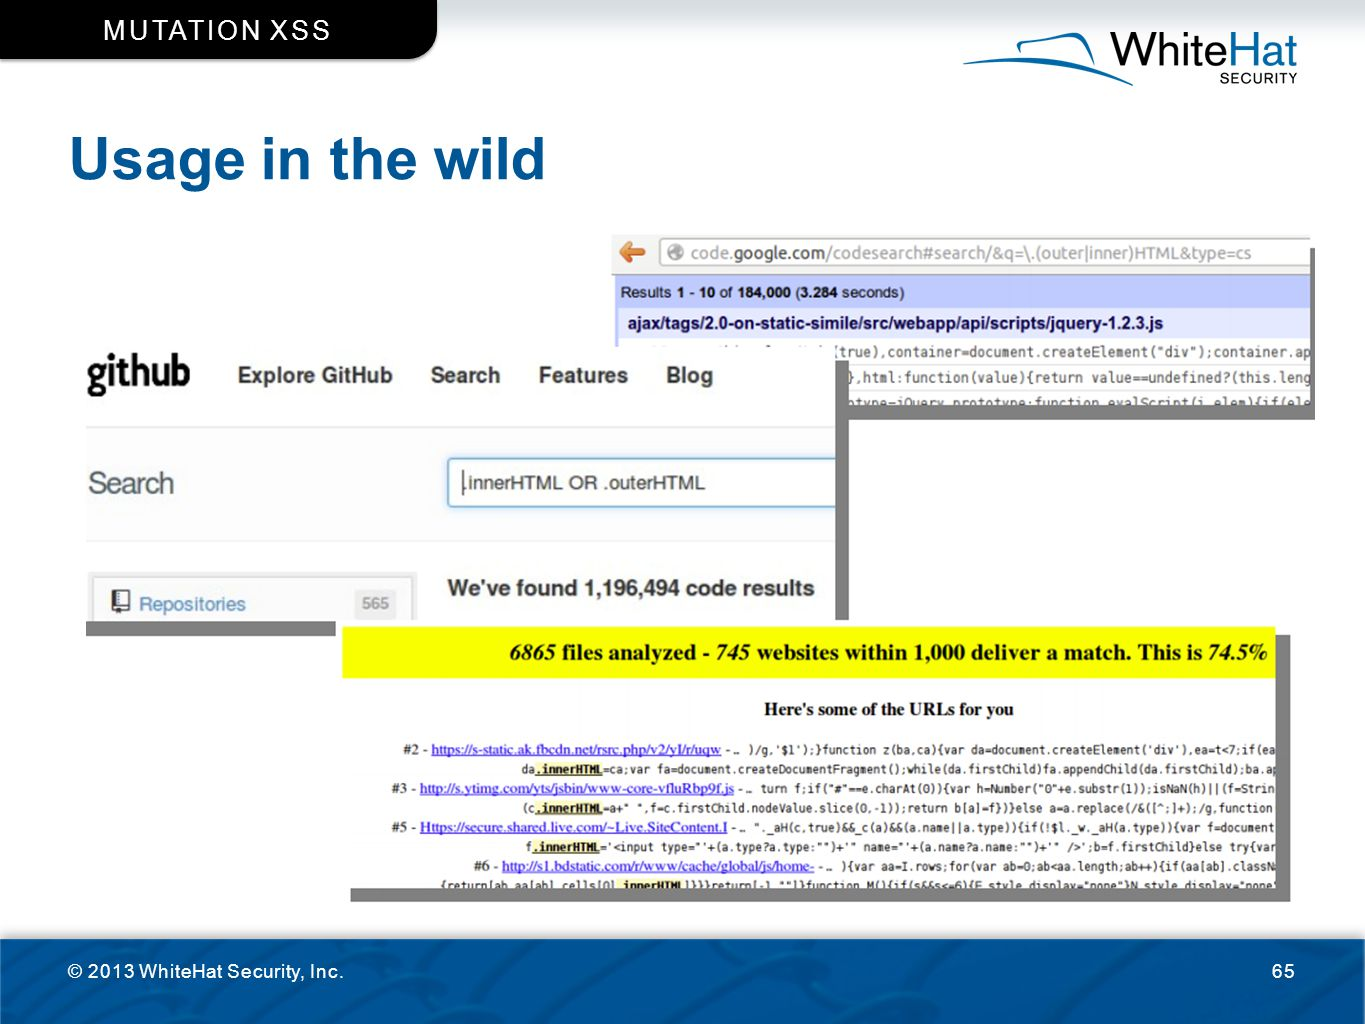 Mutation XSS Usage in the wild © 2013 WhiteHat Security, Inc.